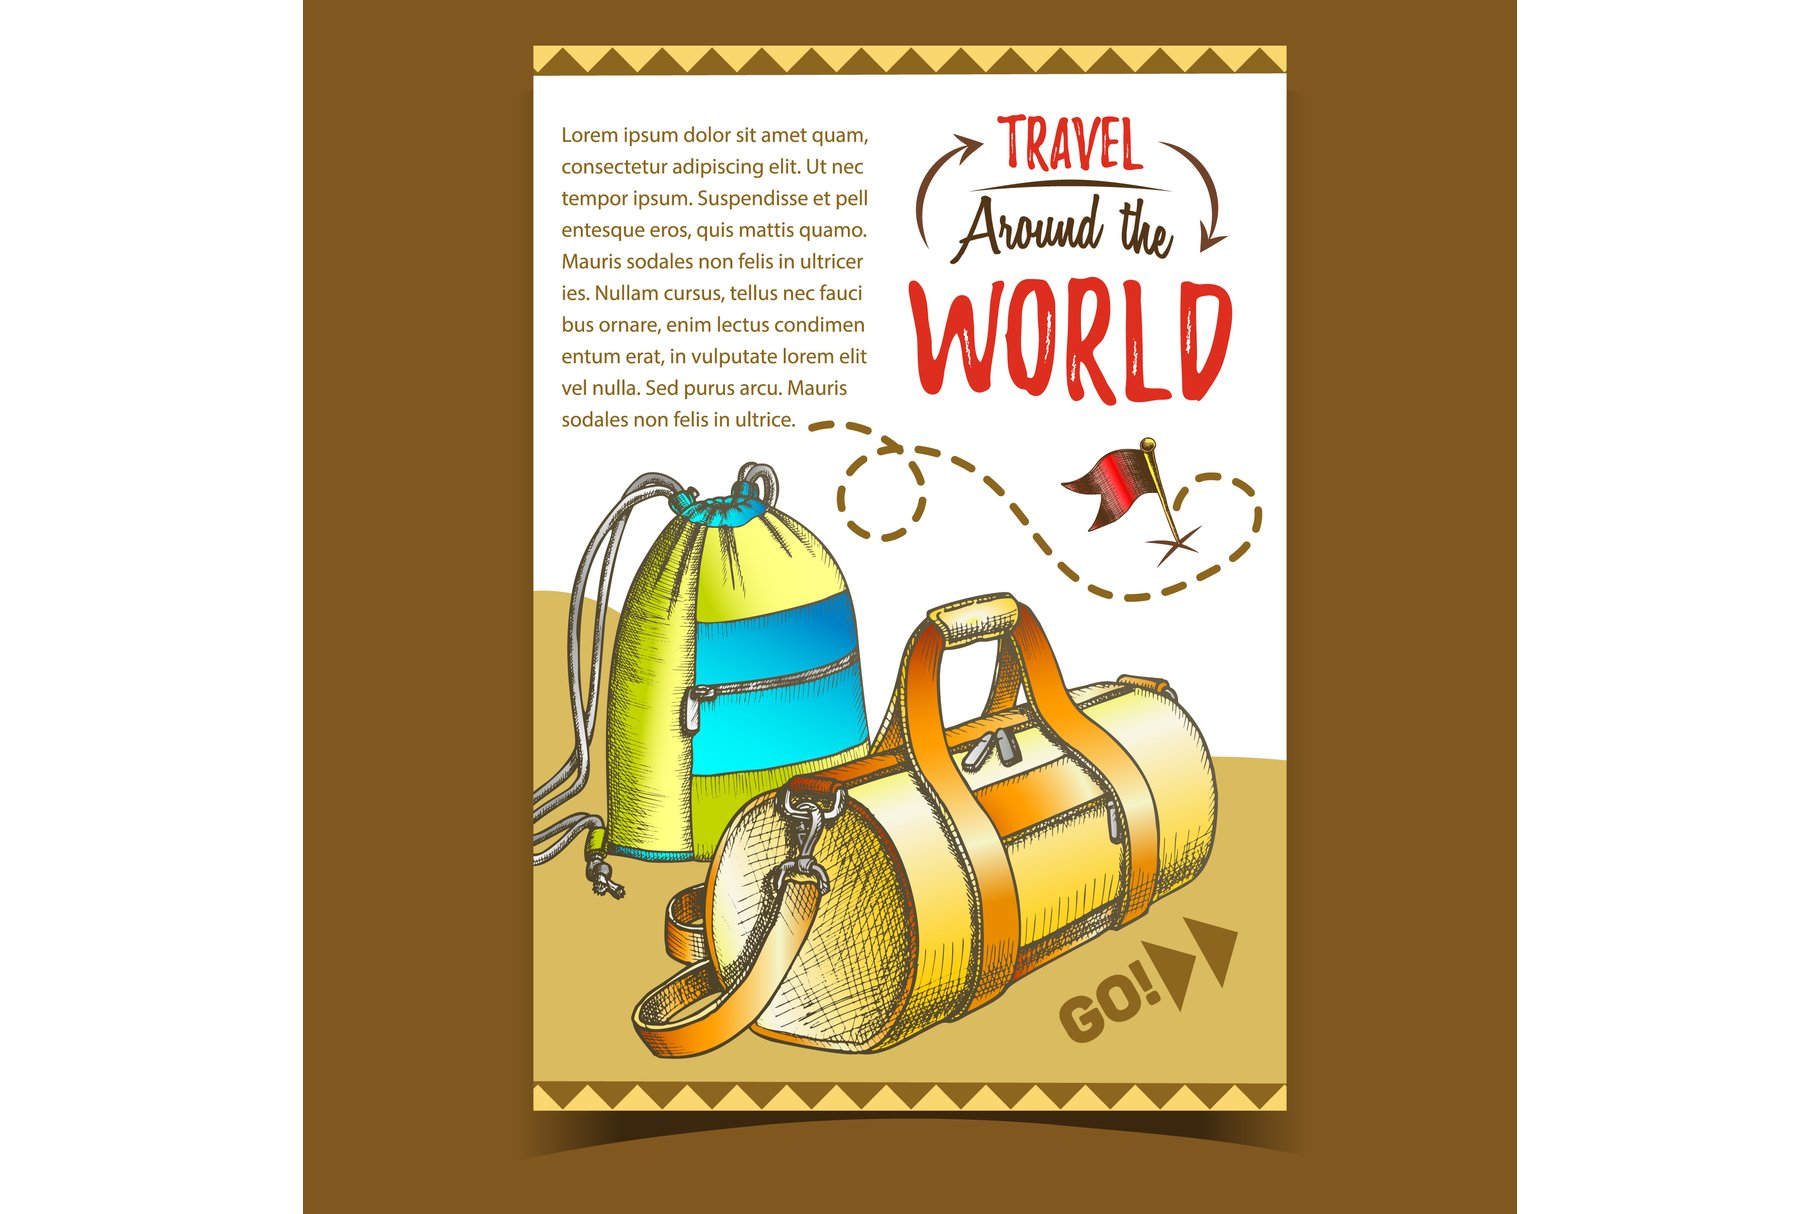 Travel World Advertising Poster With Bags Vector example image 1